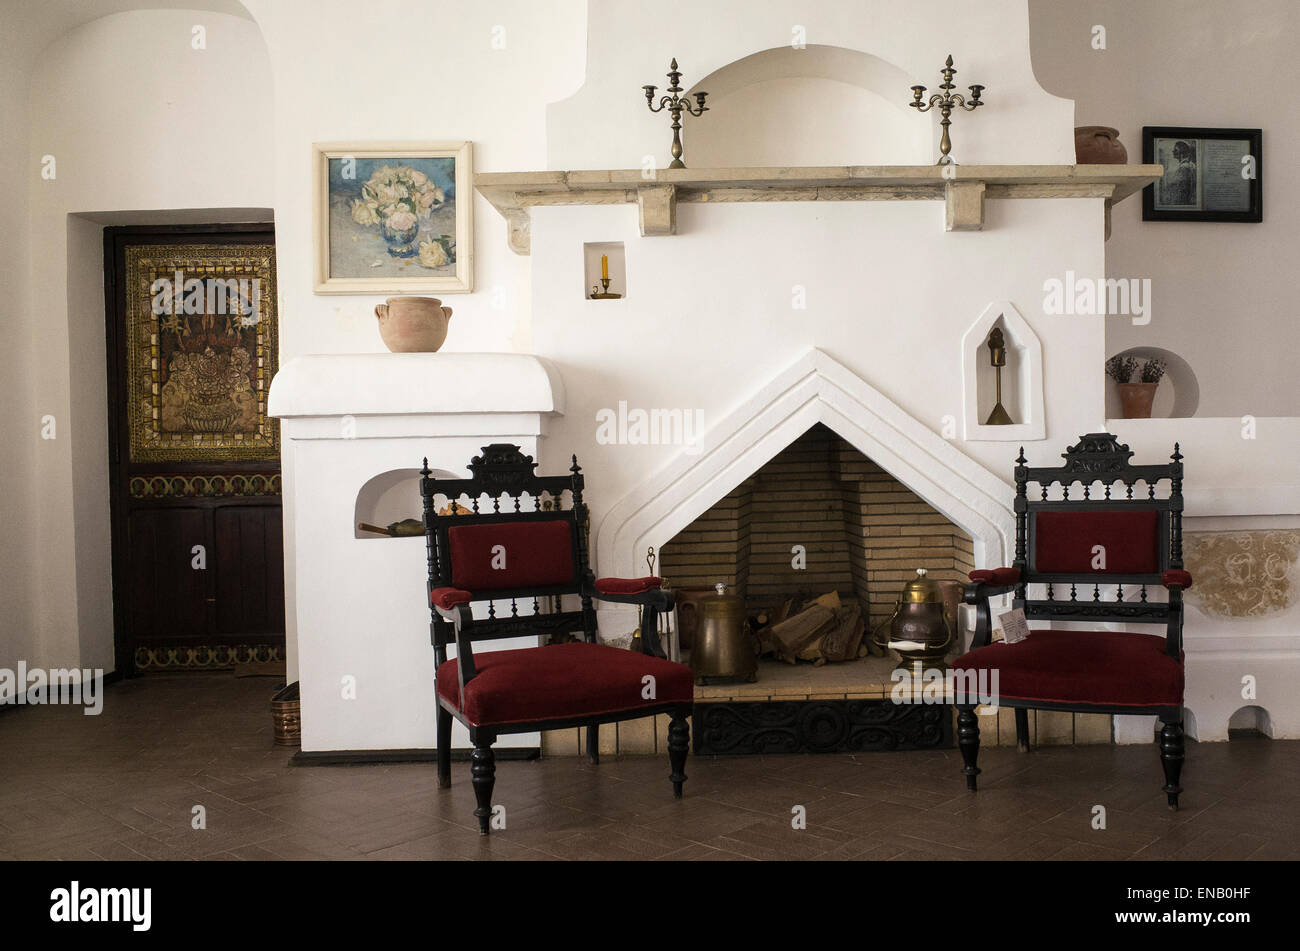 Antique furniture and fireplace in the main room of The Balchik Palace, the summer retreat of queen Marie of Romania - Stock Image